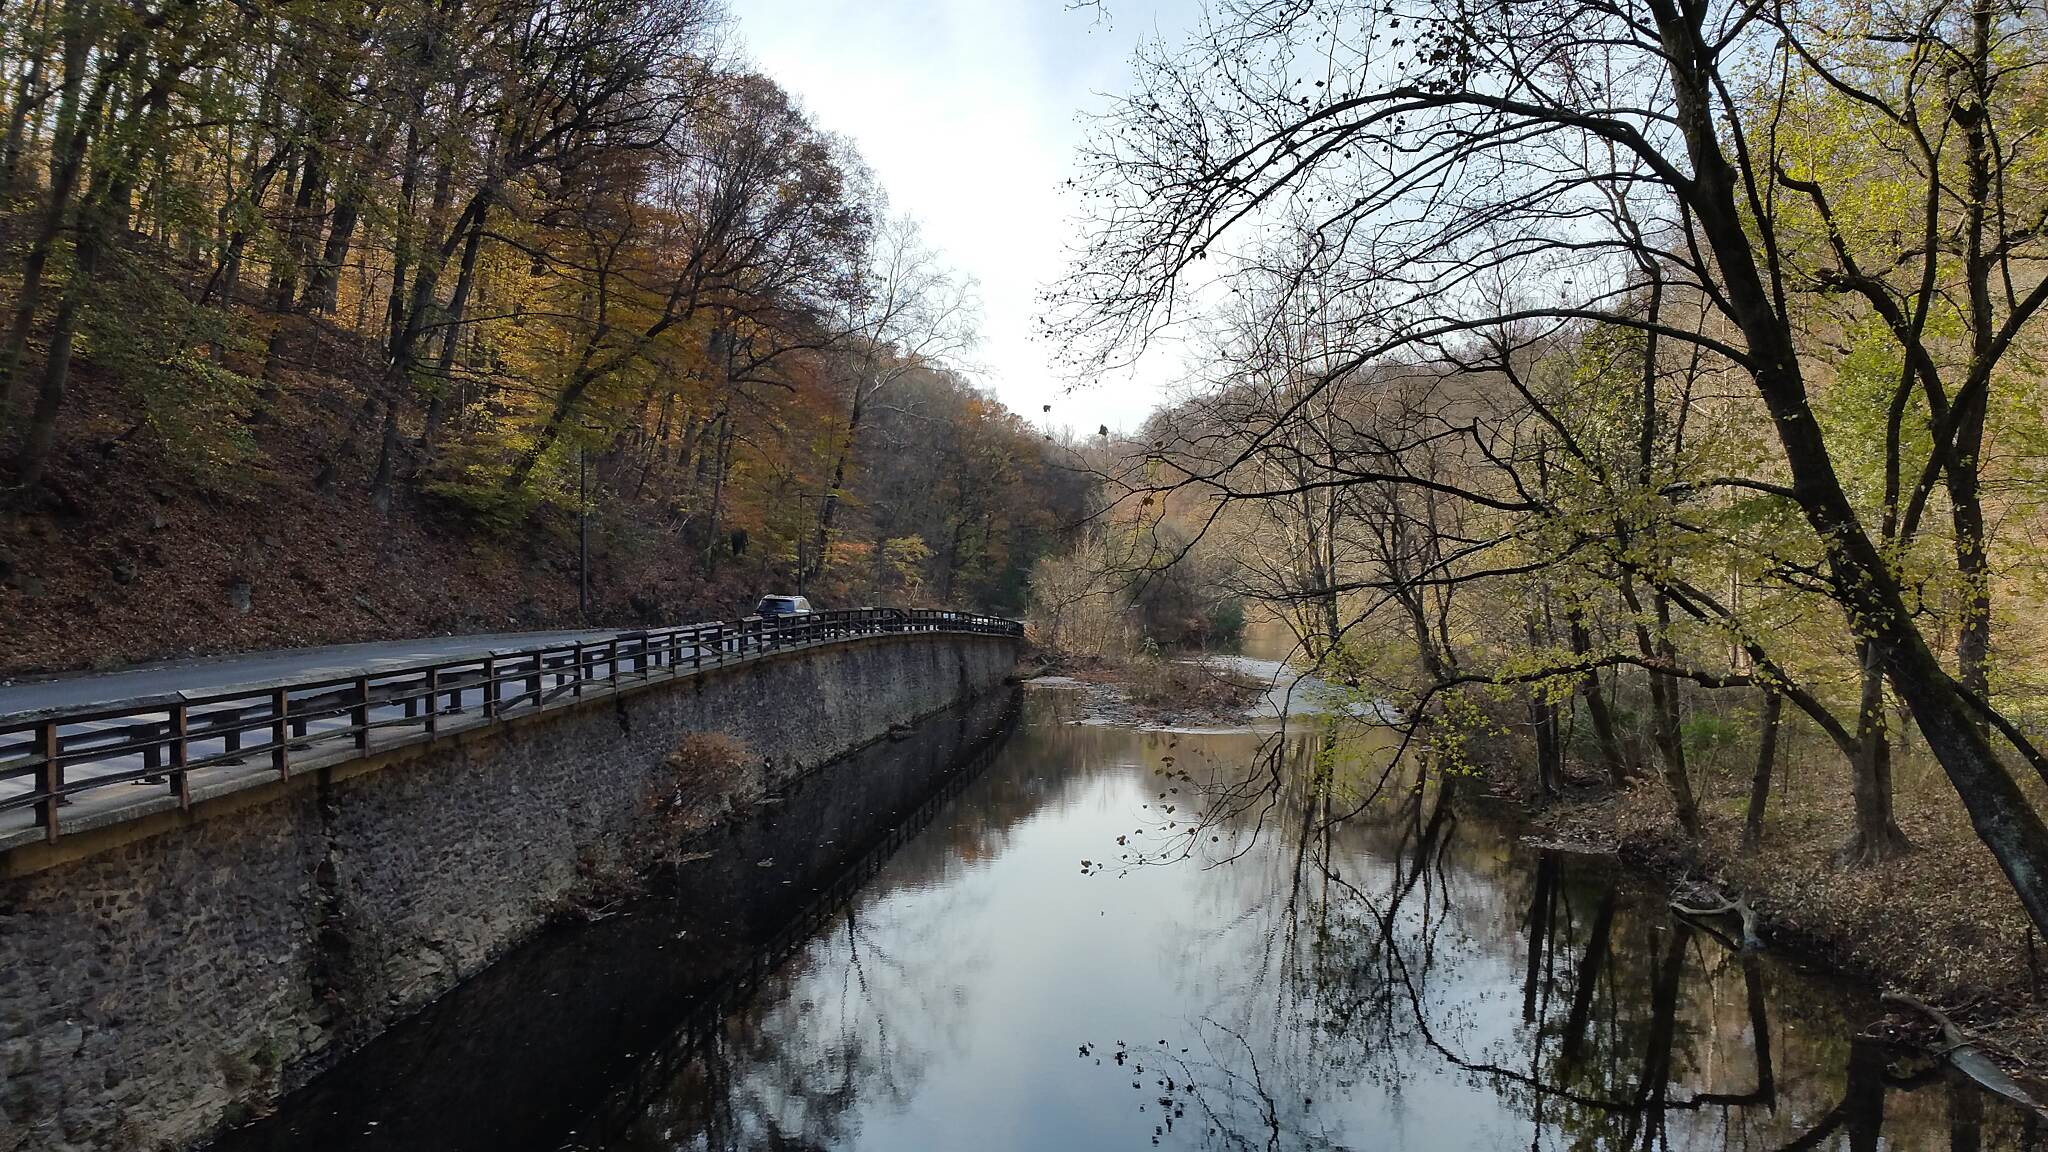 Lincoln Drive Trail  Over Looking The Wissahickon Creek. Photo was taken on an access bridge just off the trail.